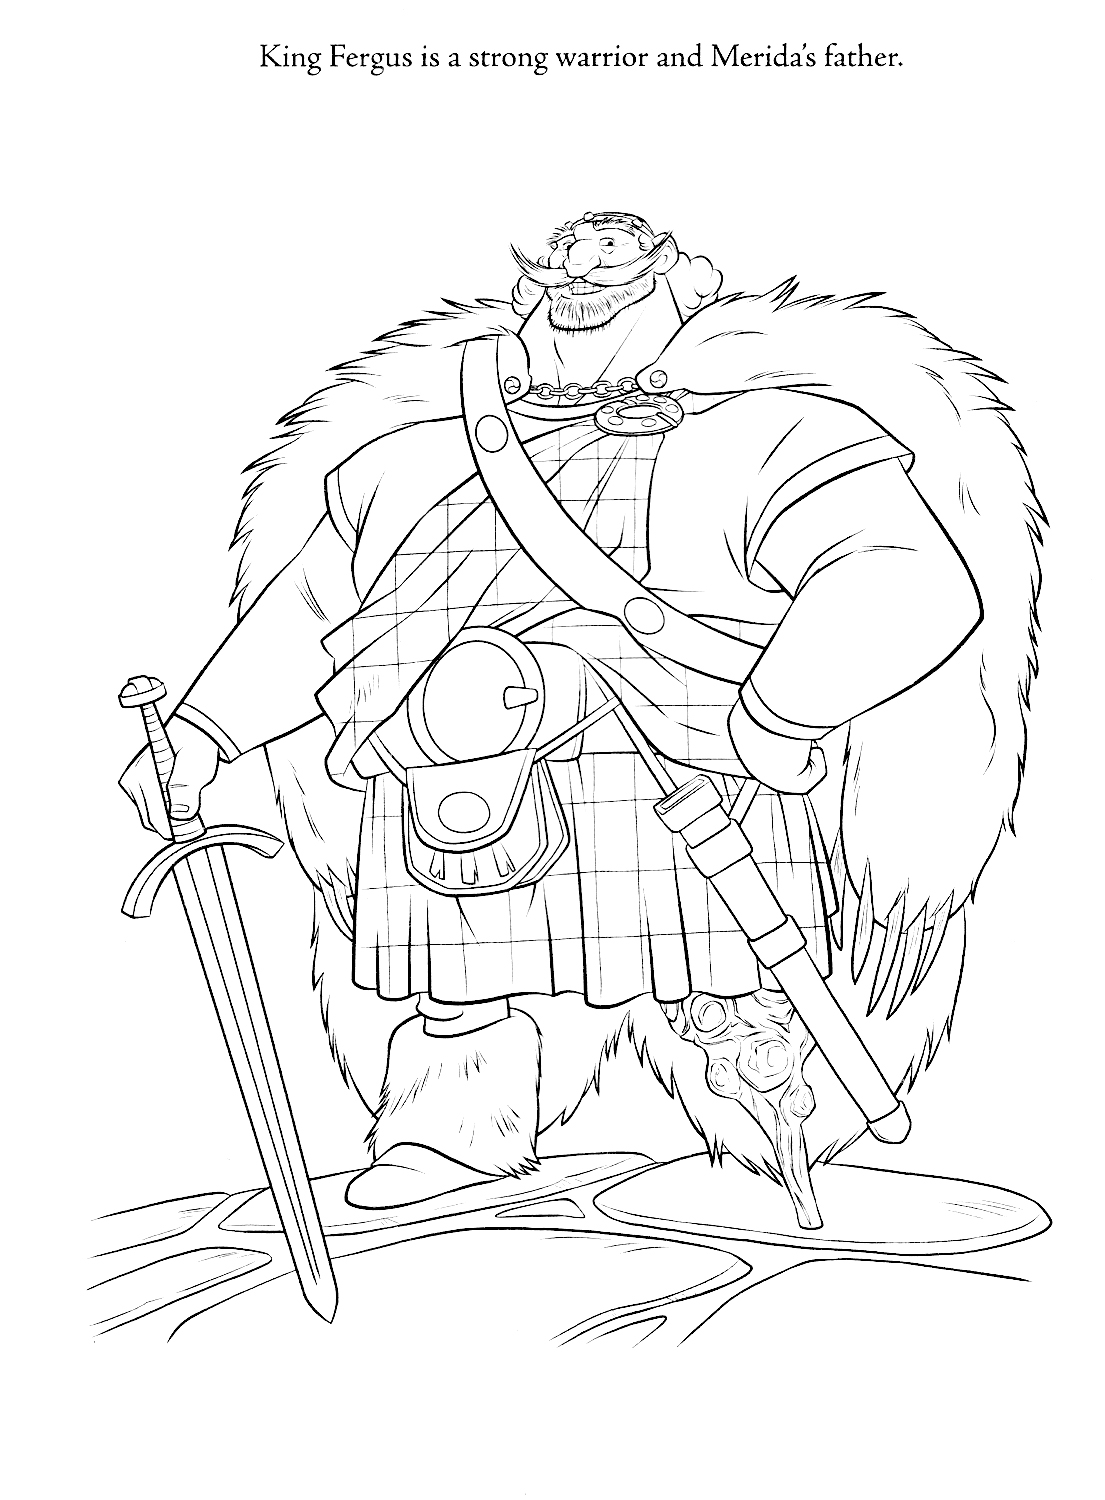 King Fergus Merida Father Brave Coloring Pages